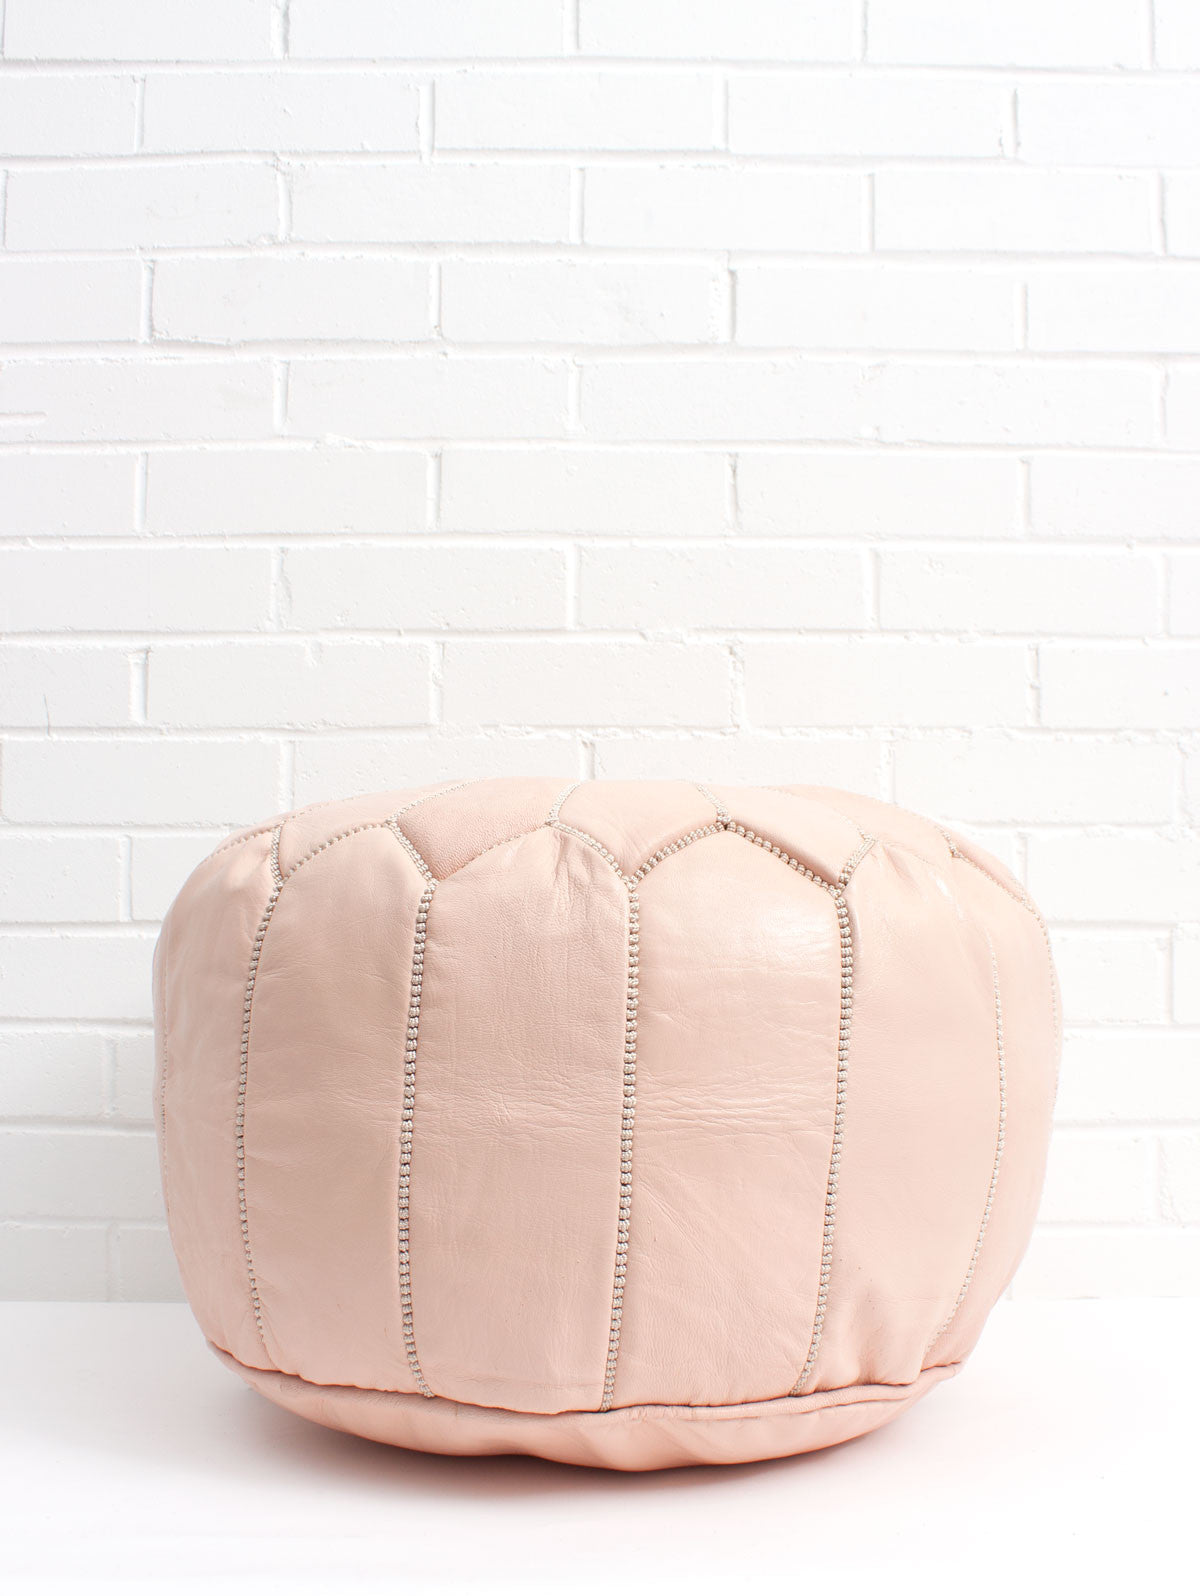 Moroccan Leather Pouffe, Nude